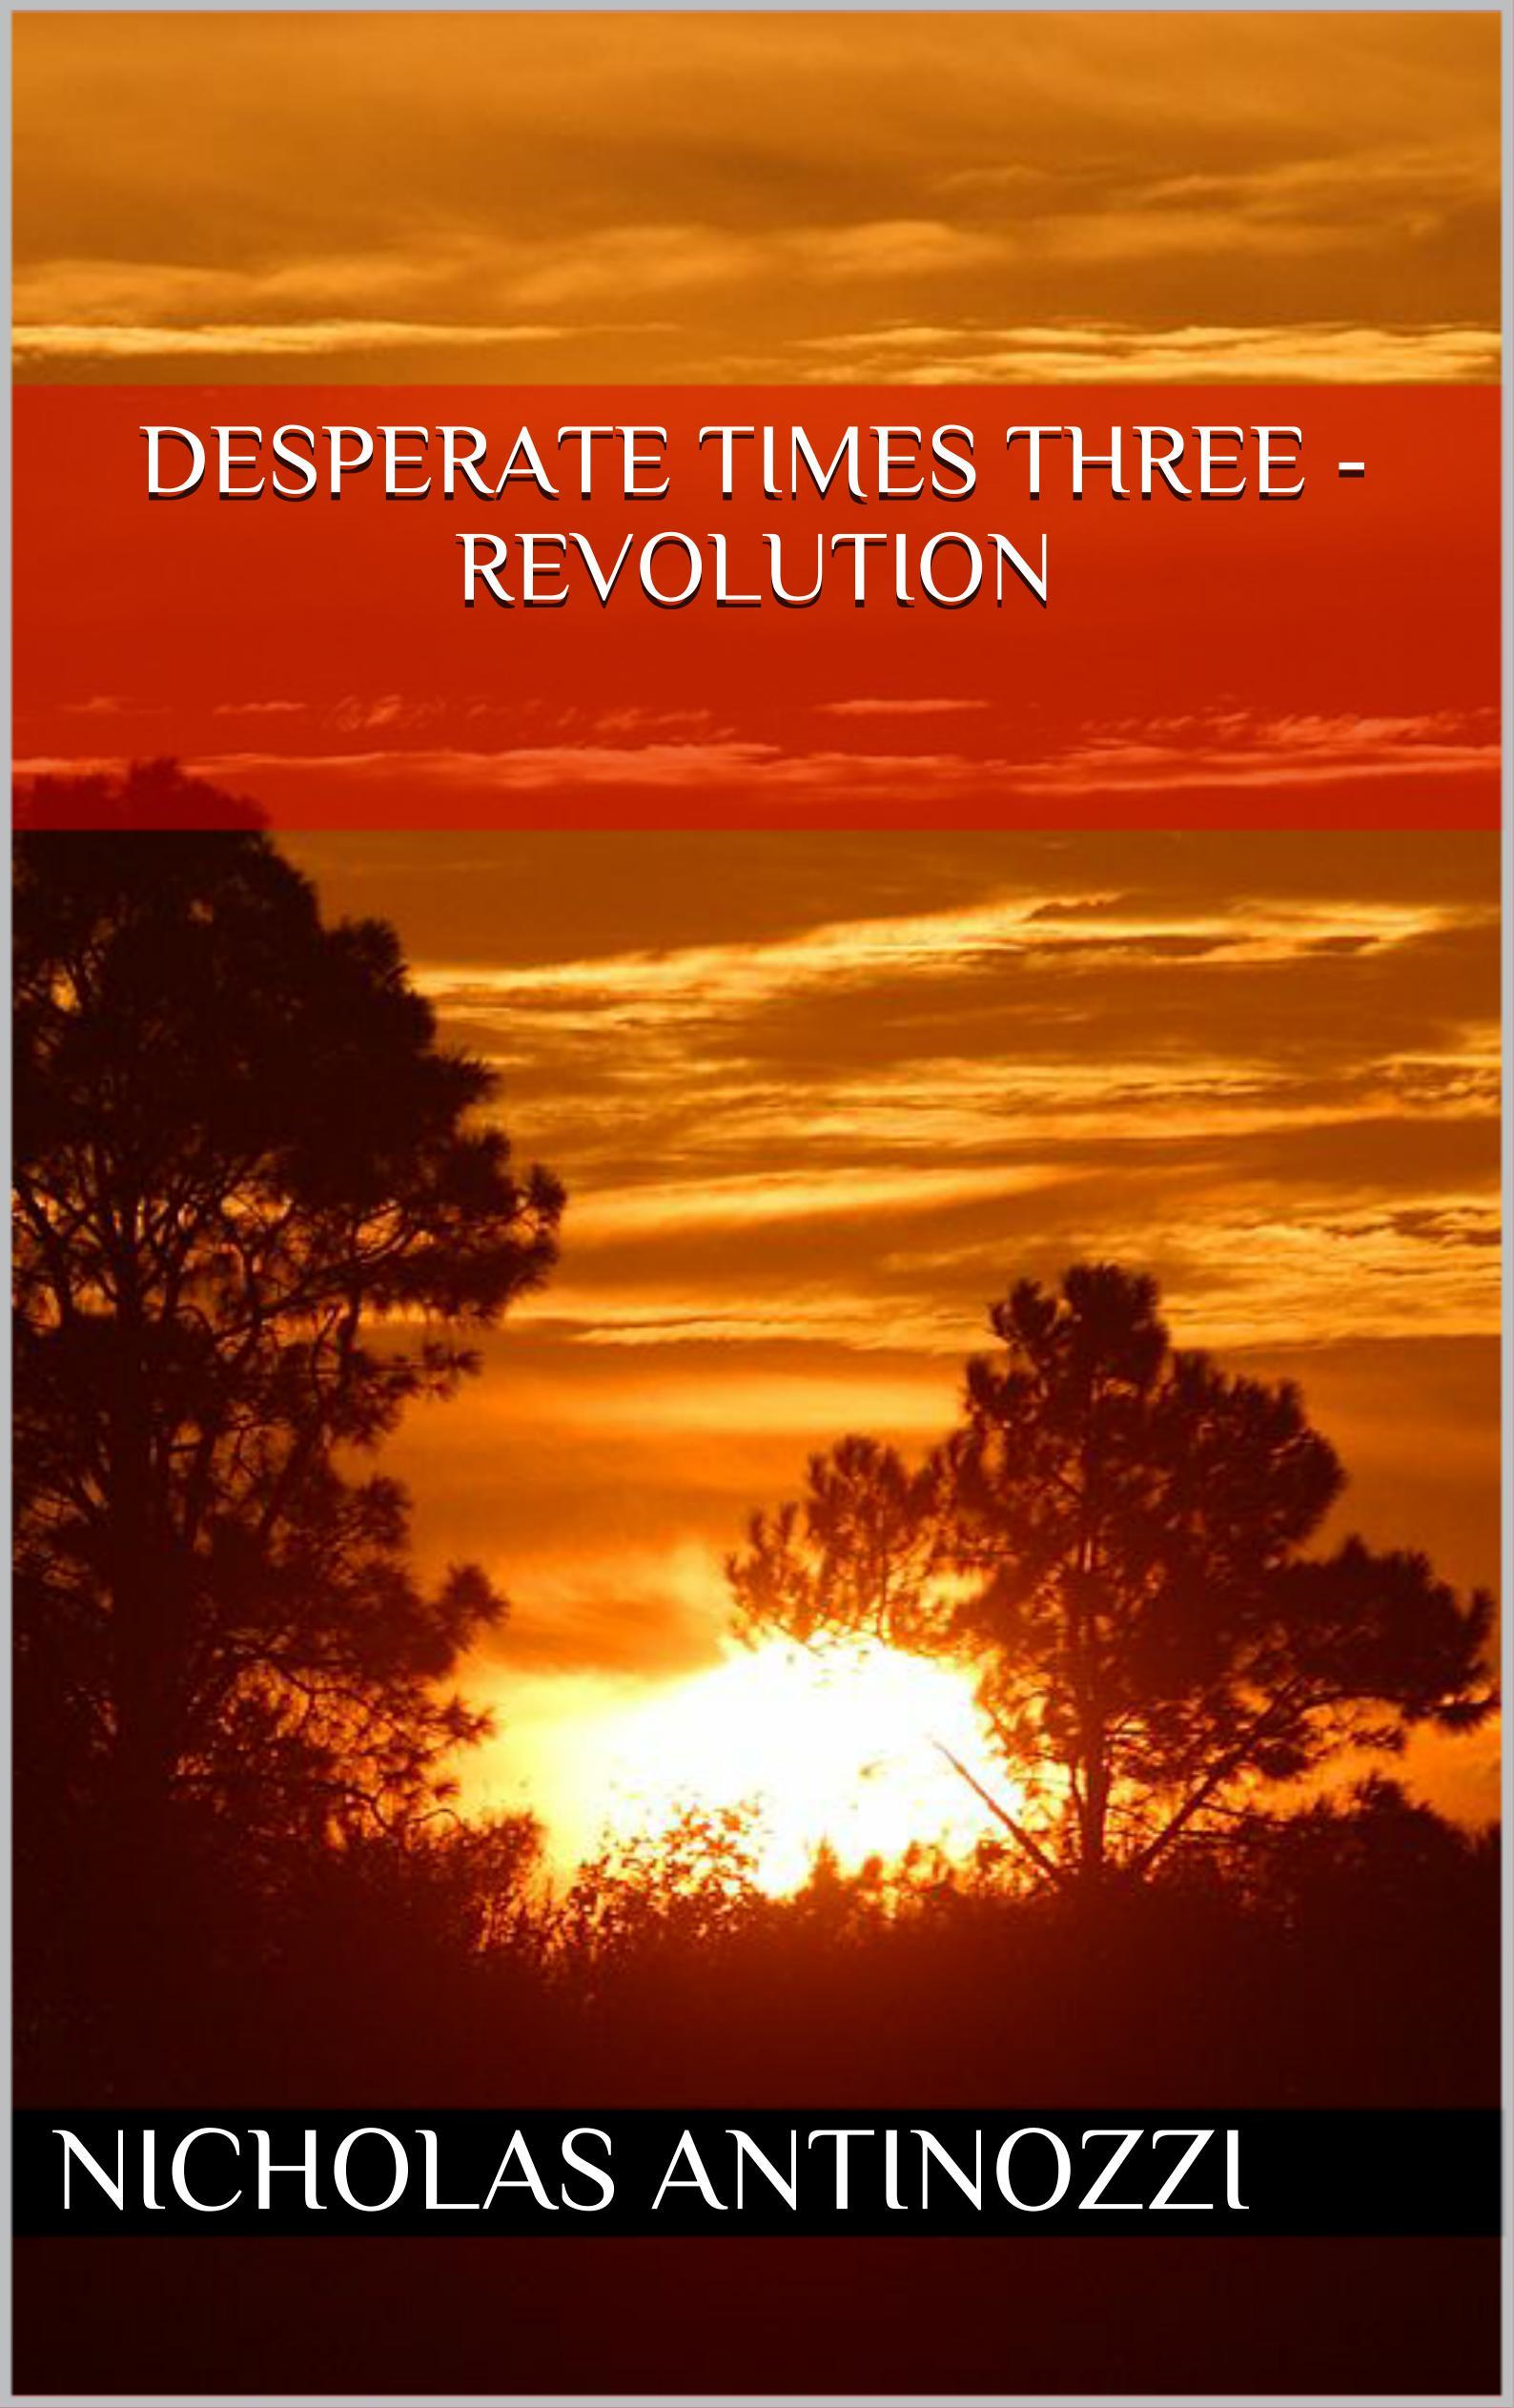 Desperate Times Three: Revolution By: Nicholas Antinozzi